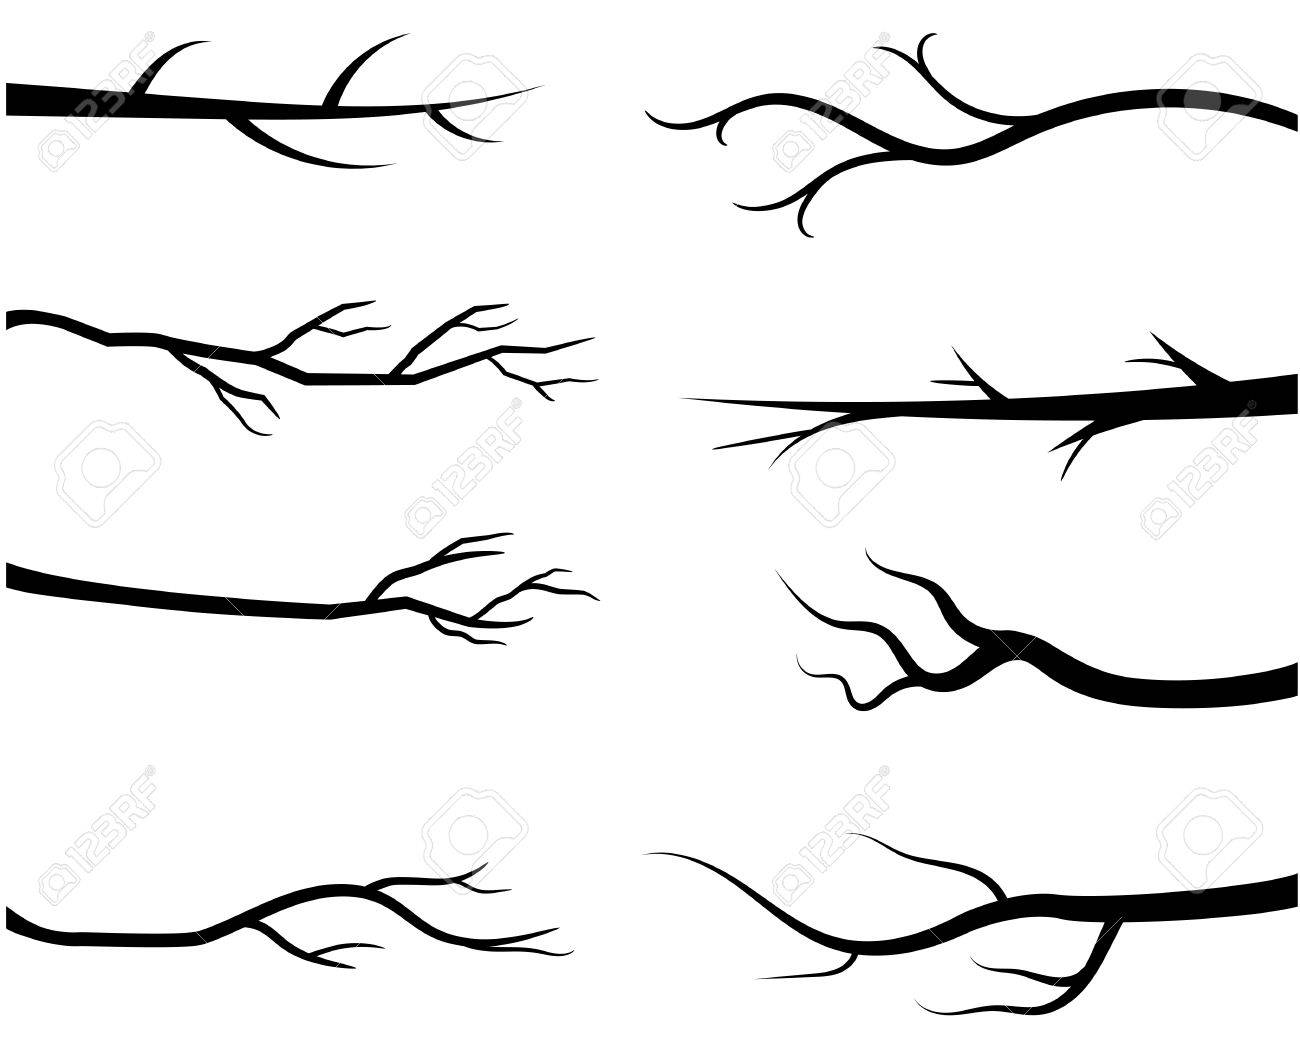 black bare tree branches vector branch silhouettes without leaves rh 123rf com branch vector free download branch vector download